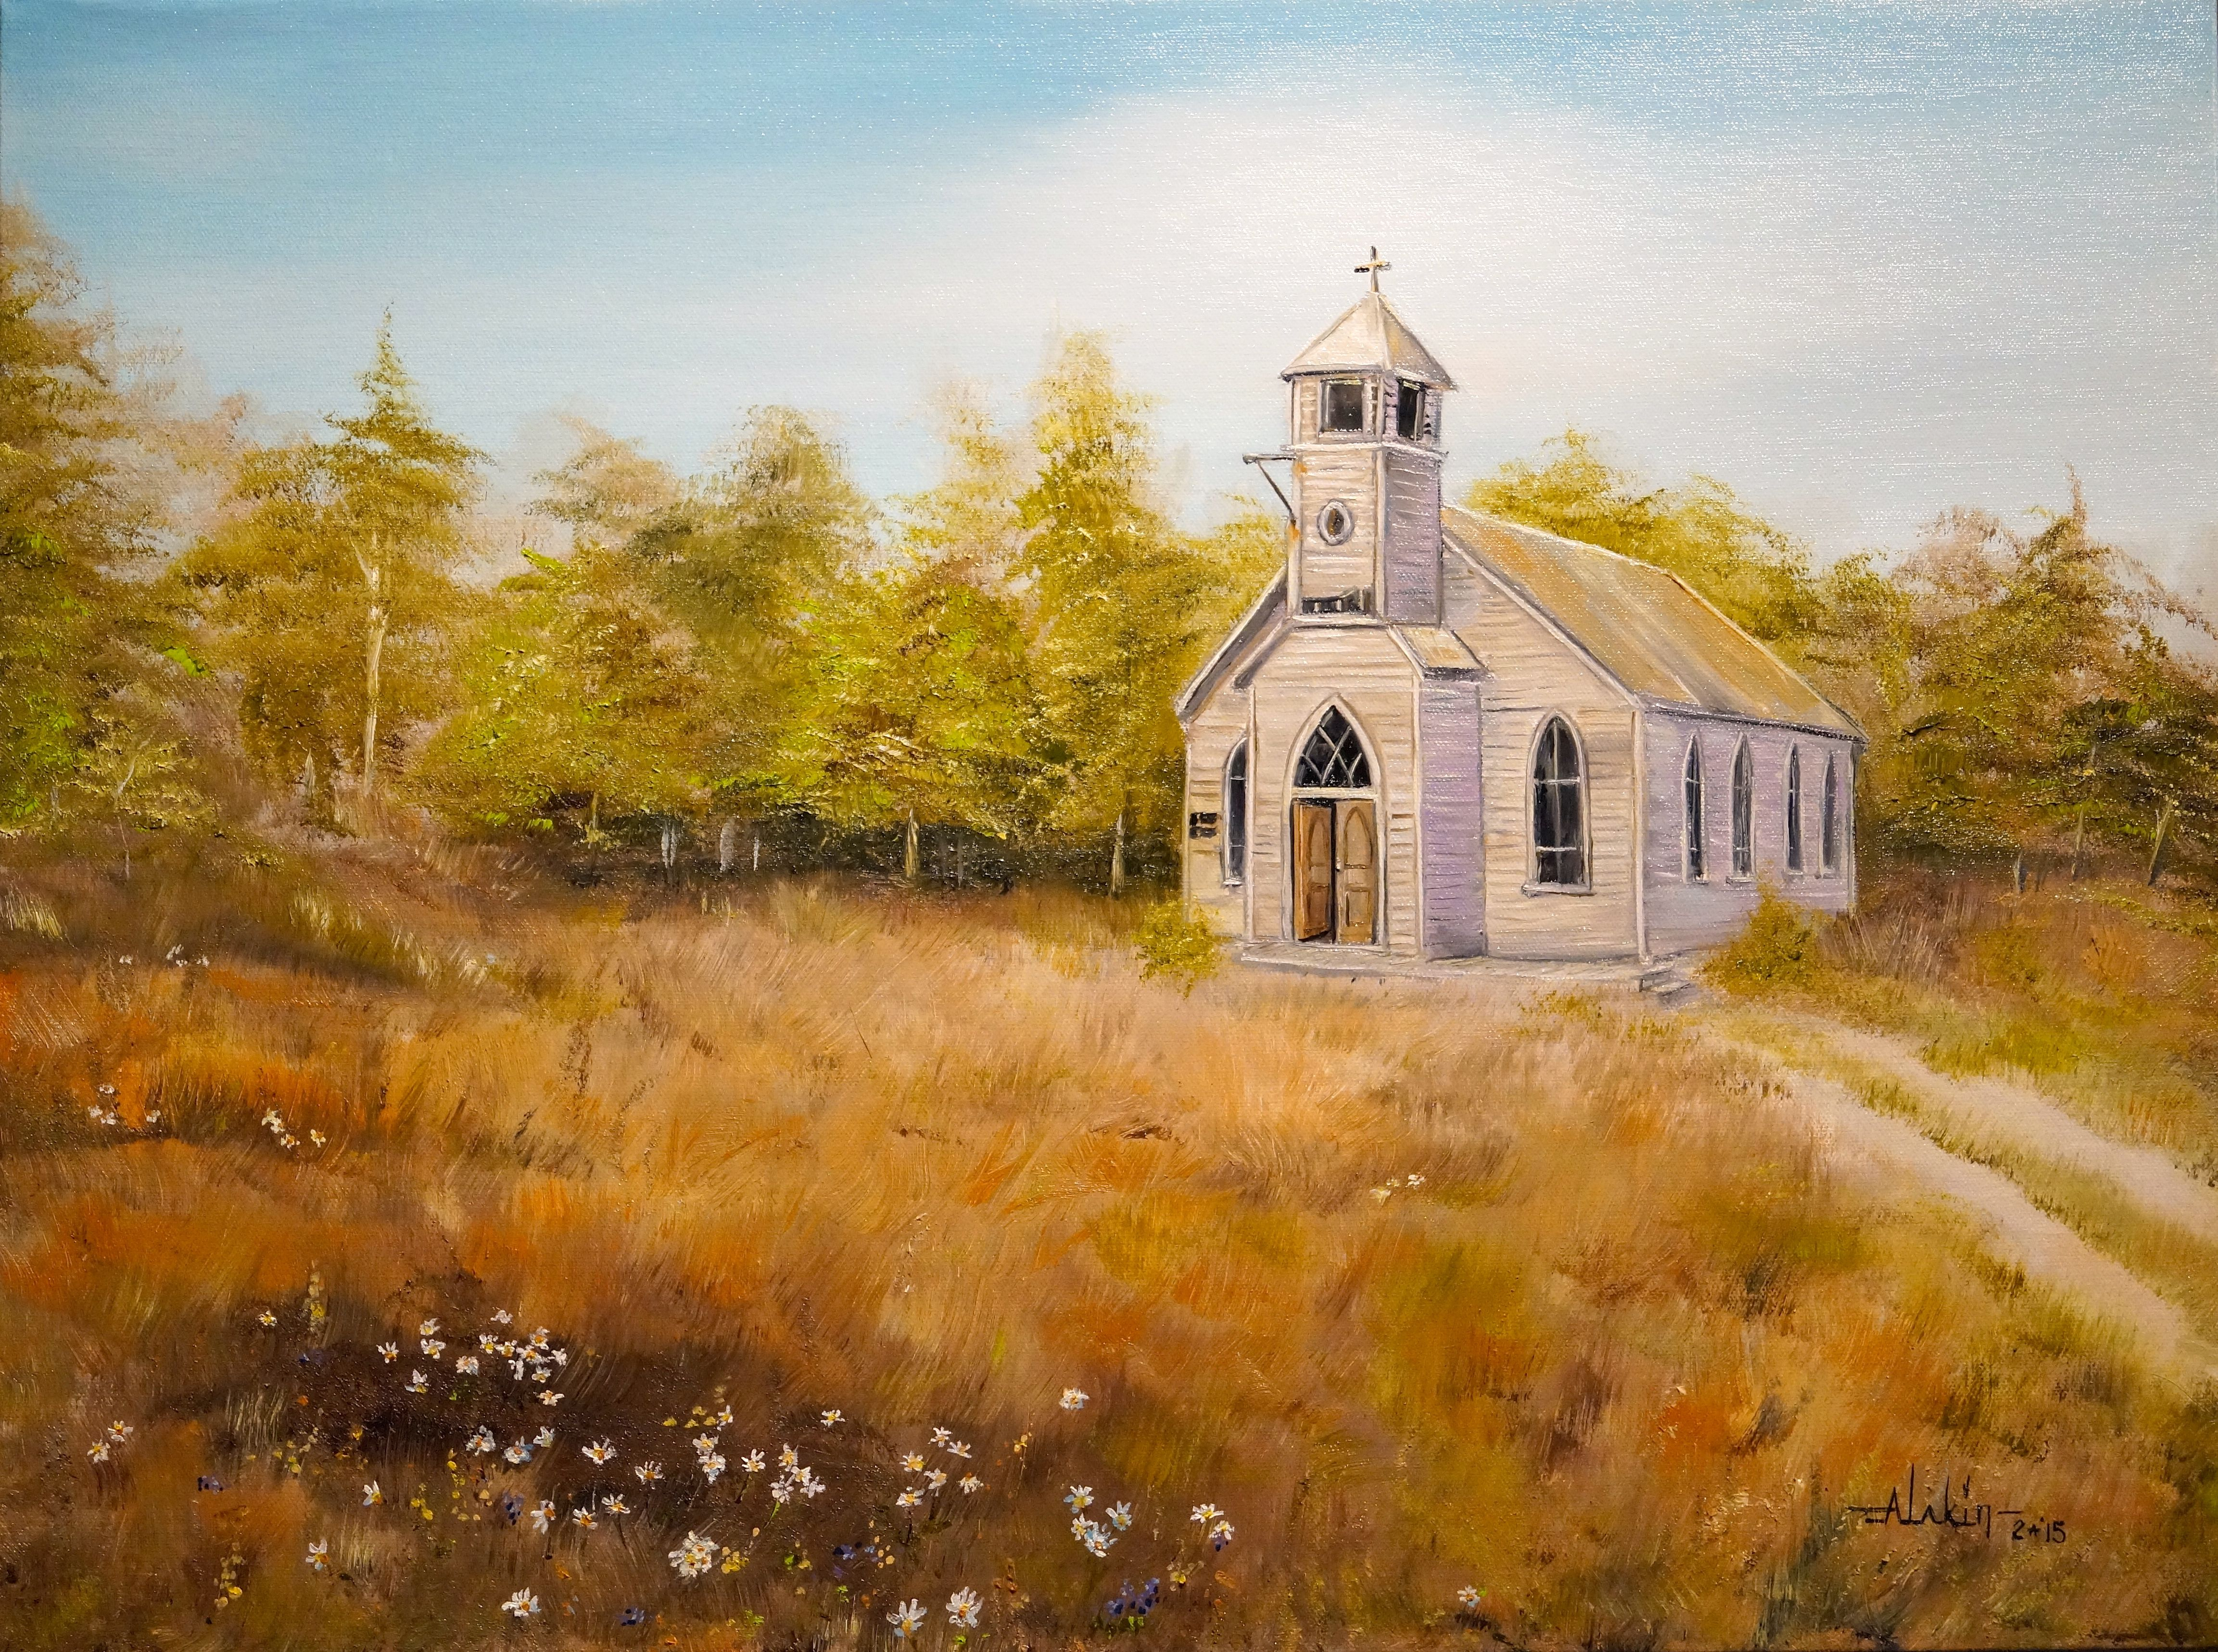 Watercolor artist websites - Painting Church On A Hill 18x24 Oil On Canvas Alan Lakin Artistwebsites